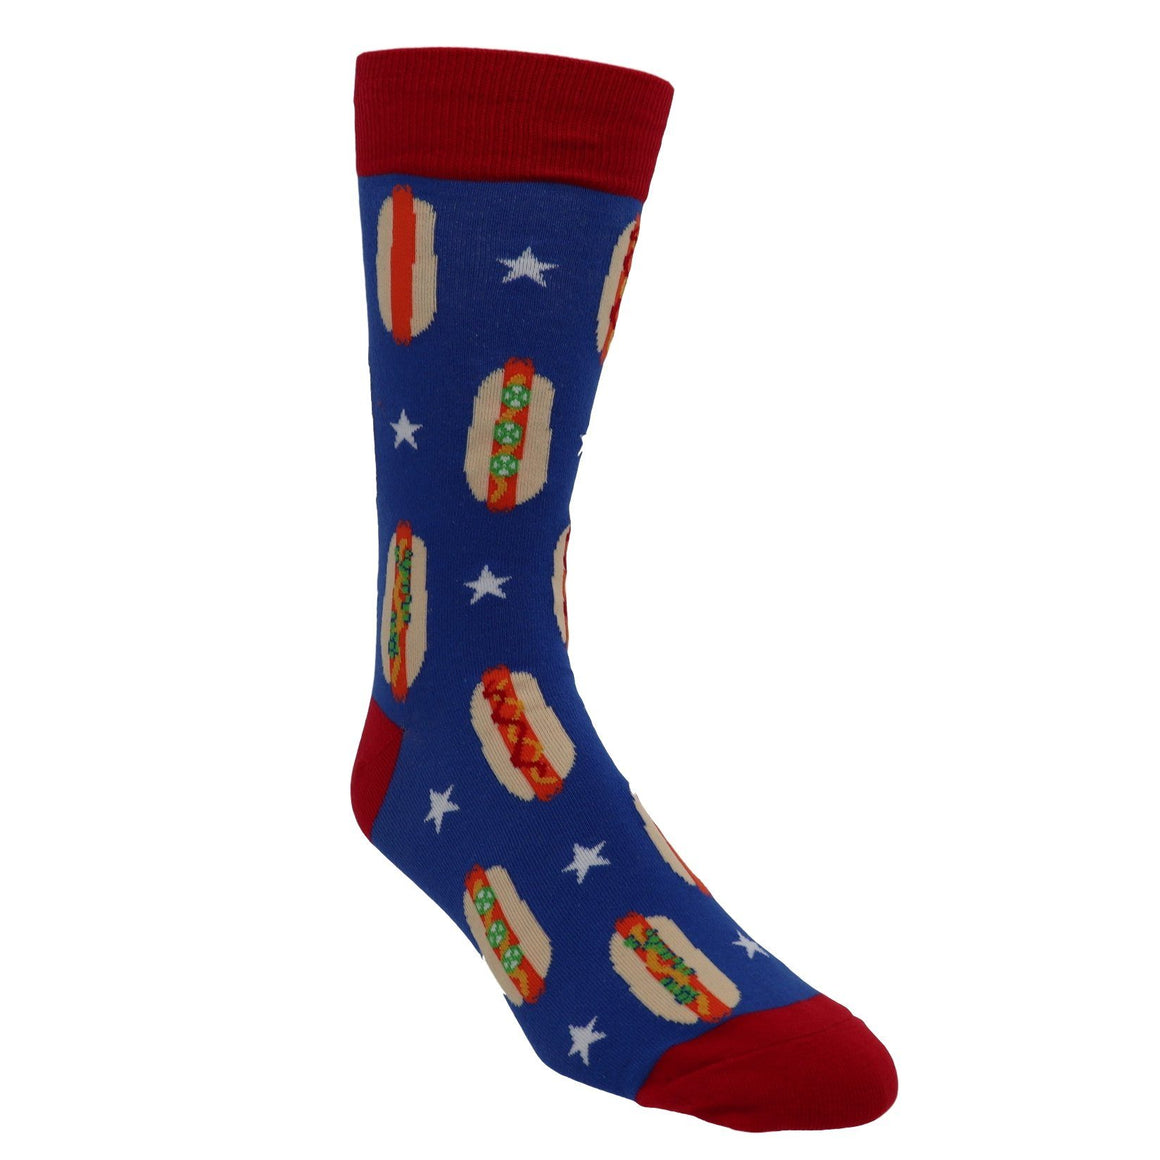 Patriotic Foot Long Men's Socks by Sock it to Me - The Sock Spot